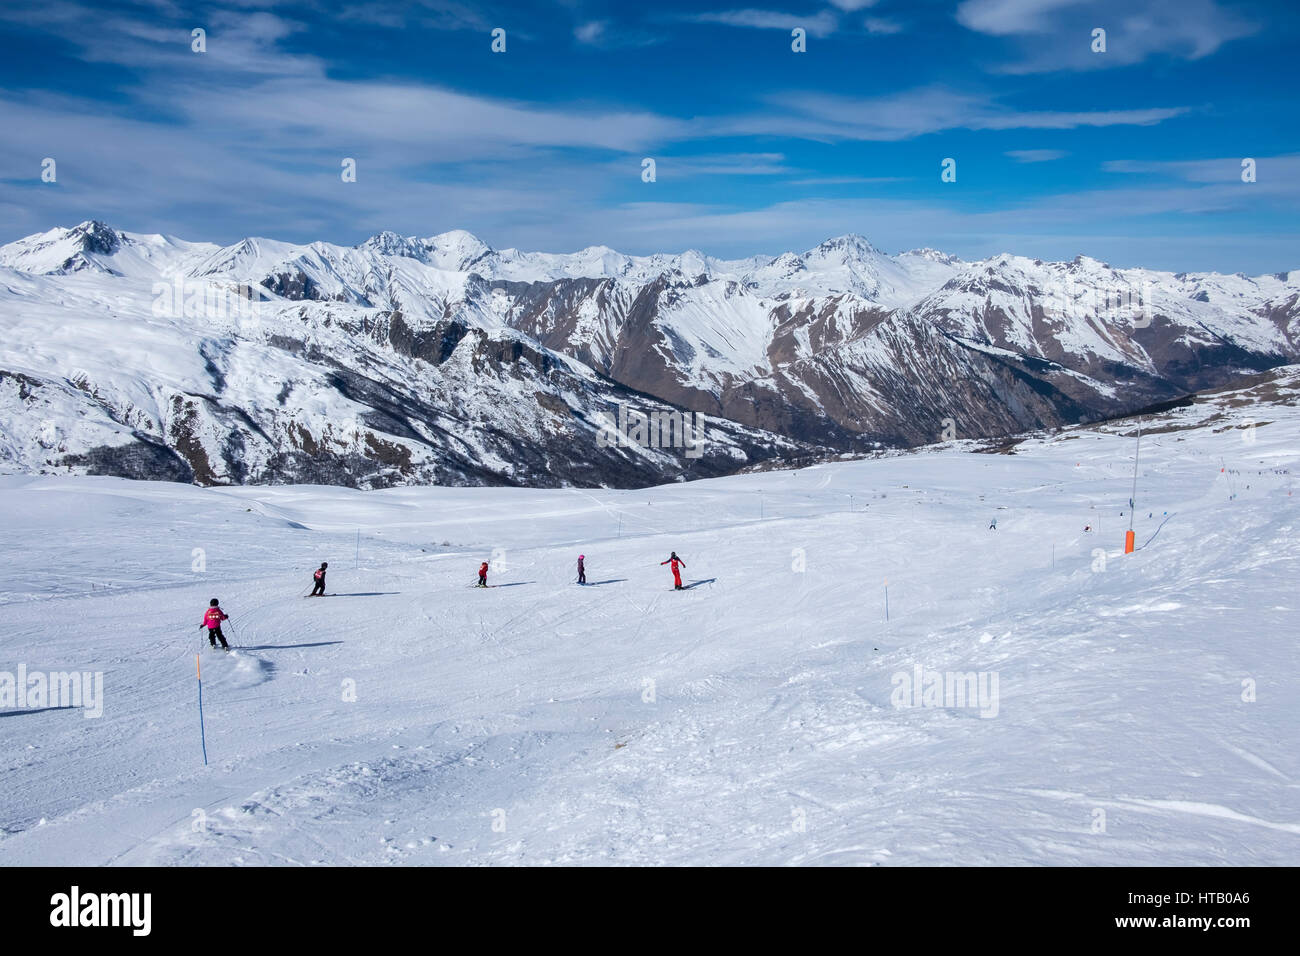 Piste at Meribel, Three Valleys ski resort in the French Alps, on a sunny winters day, with five skiers on the piste - Stock Image